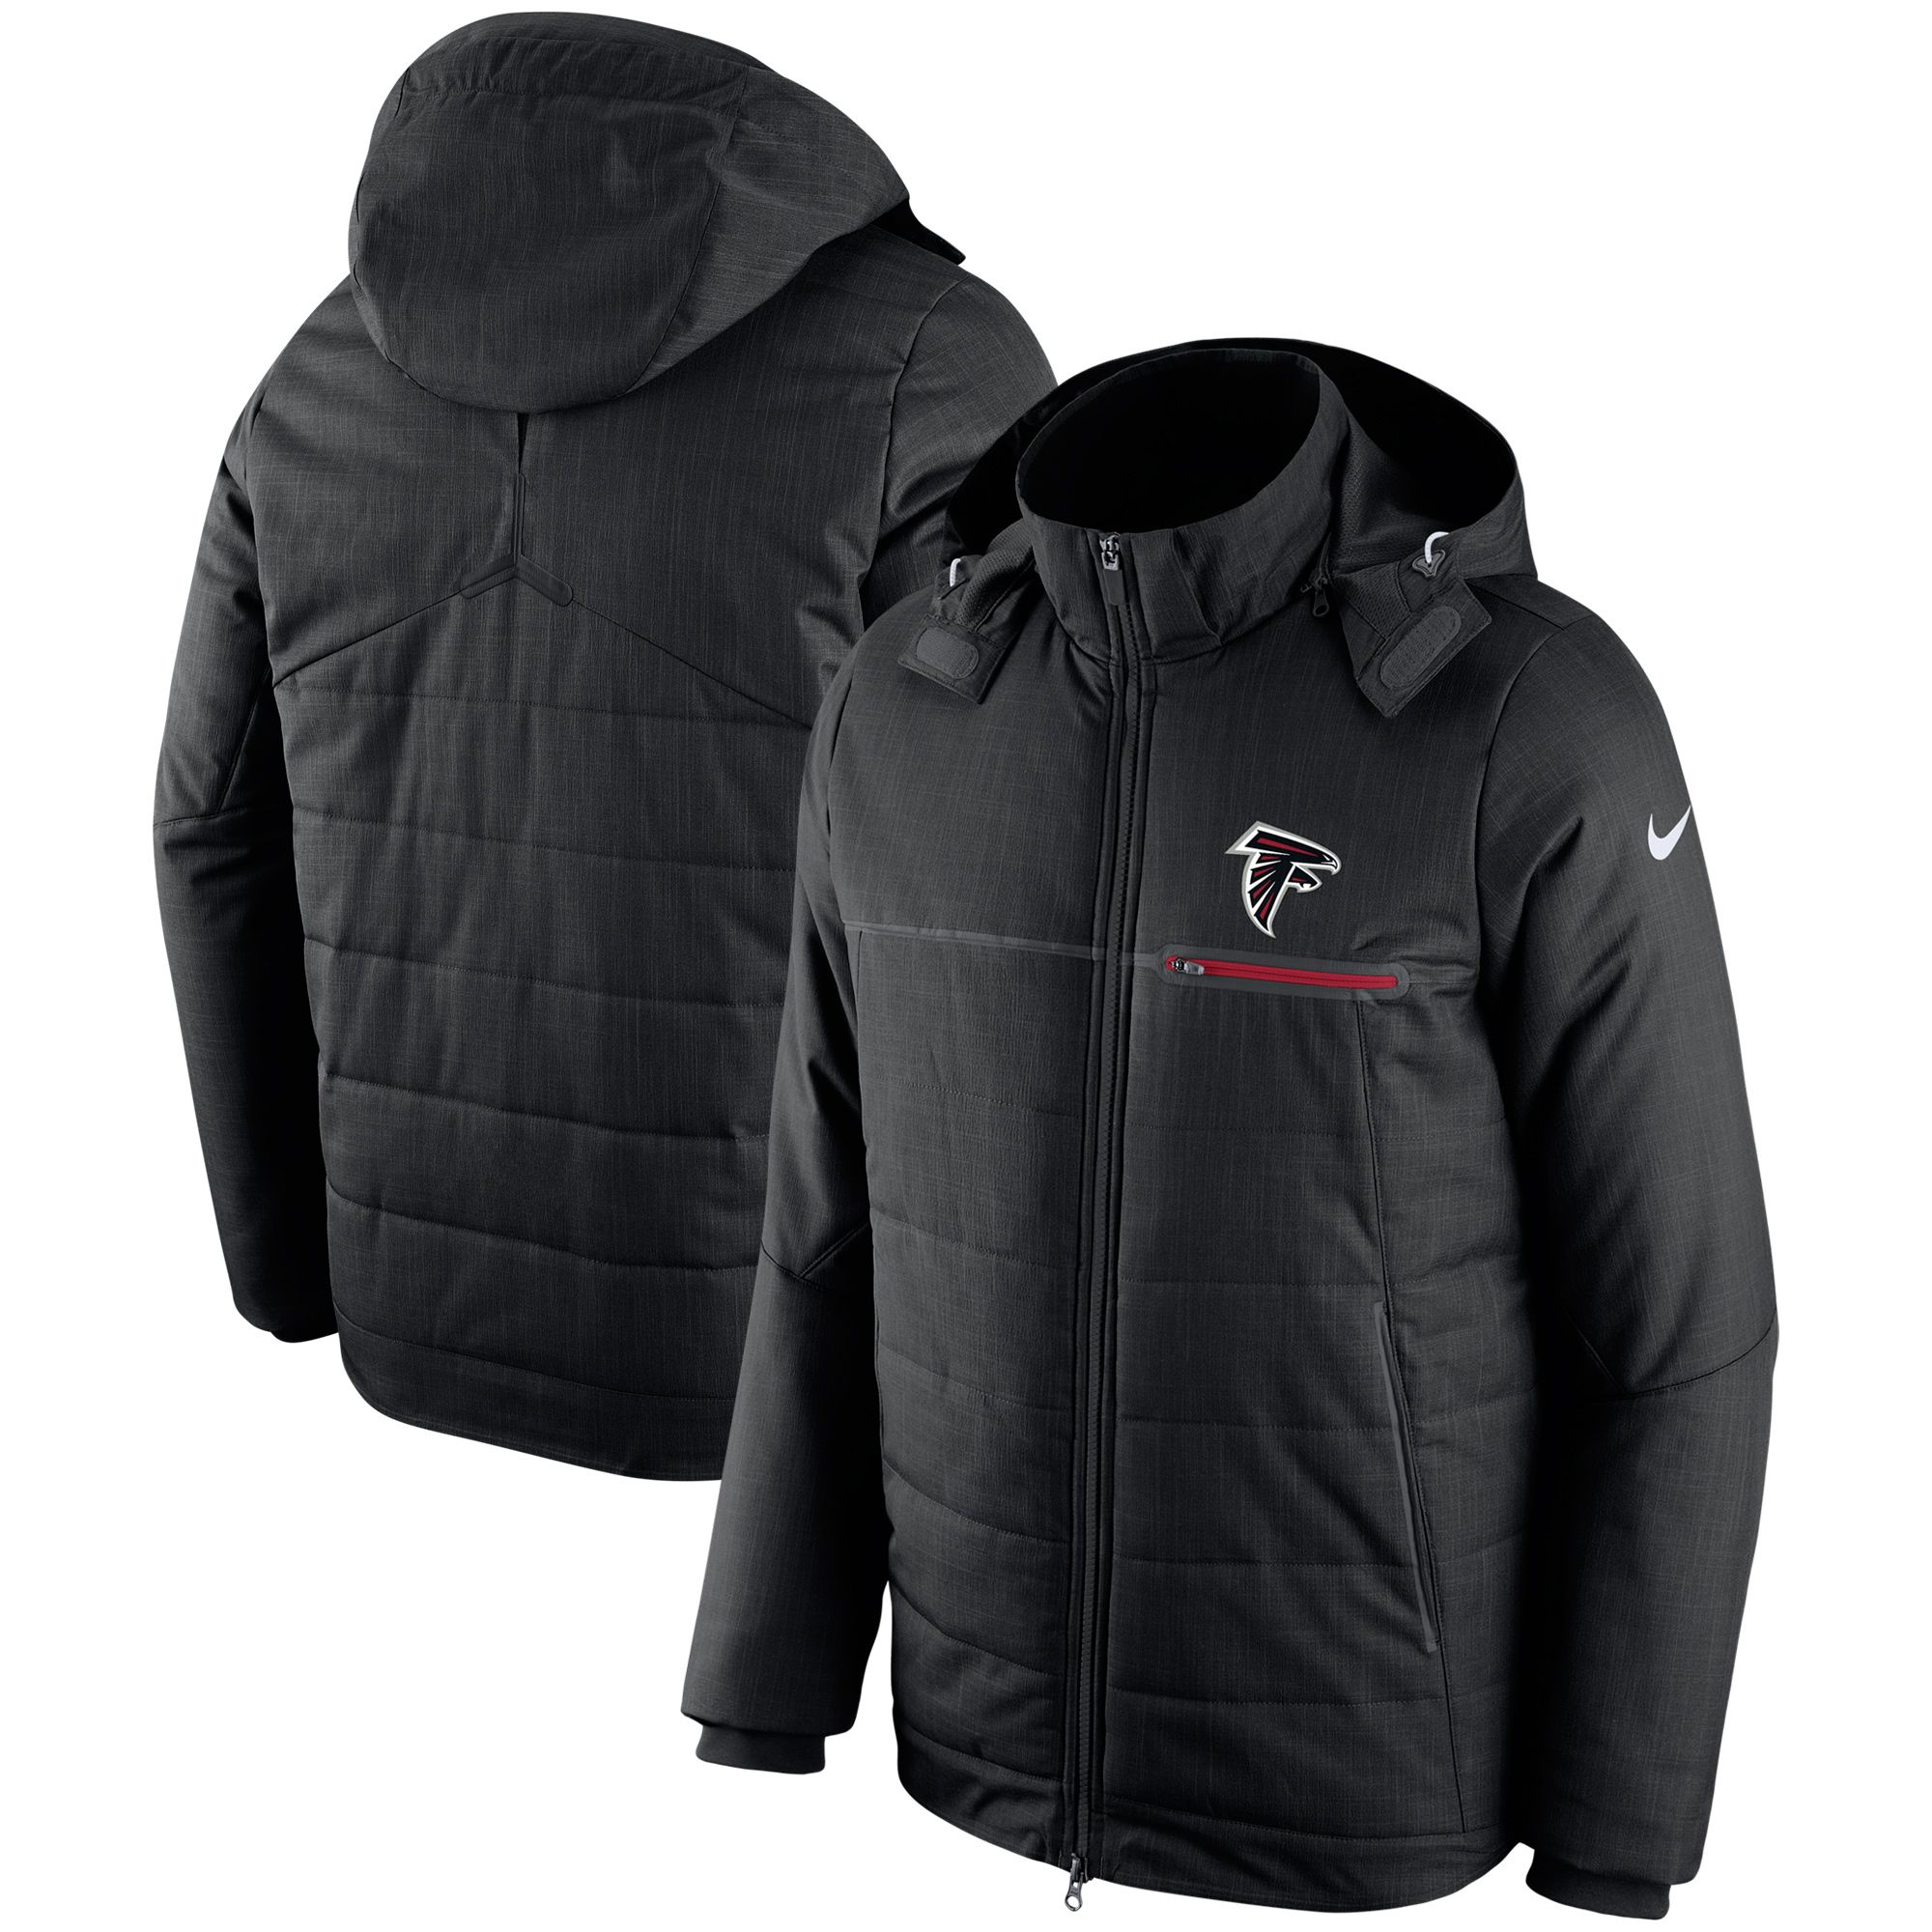 Nfl Atlanta Falcons Nike Champ Drive Sideline Full Zip Jacket Black Zip Jackets Jackets Stylish Jackets